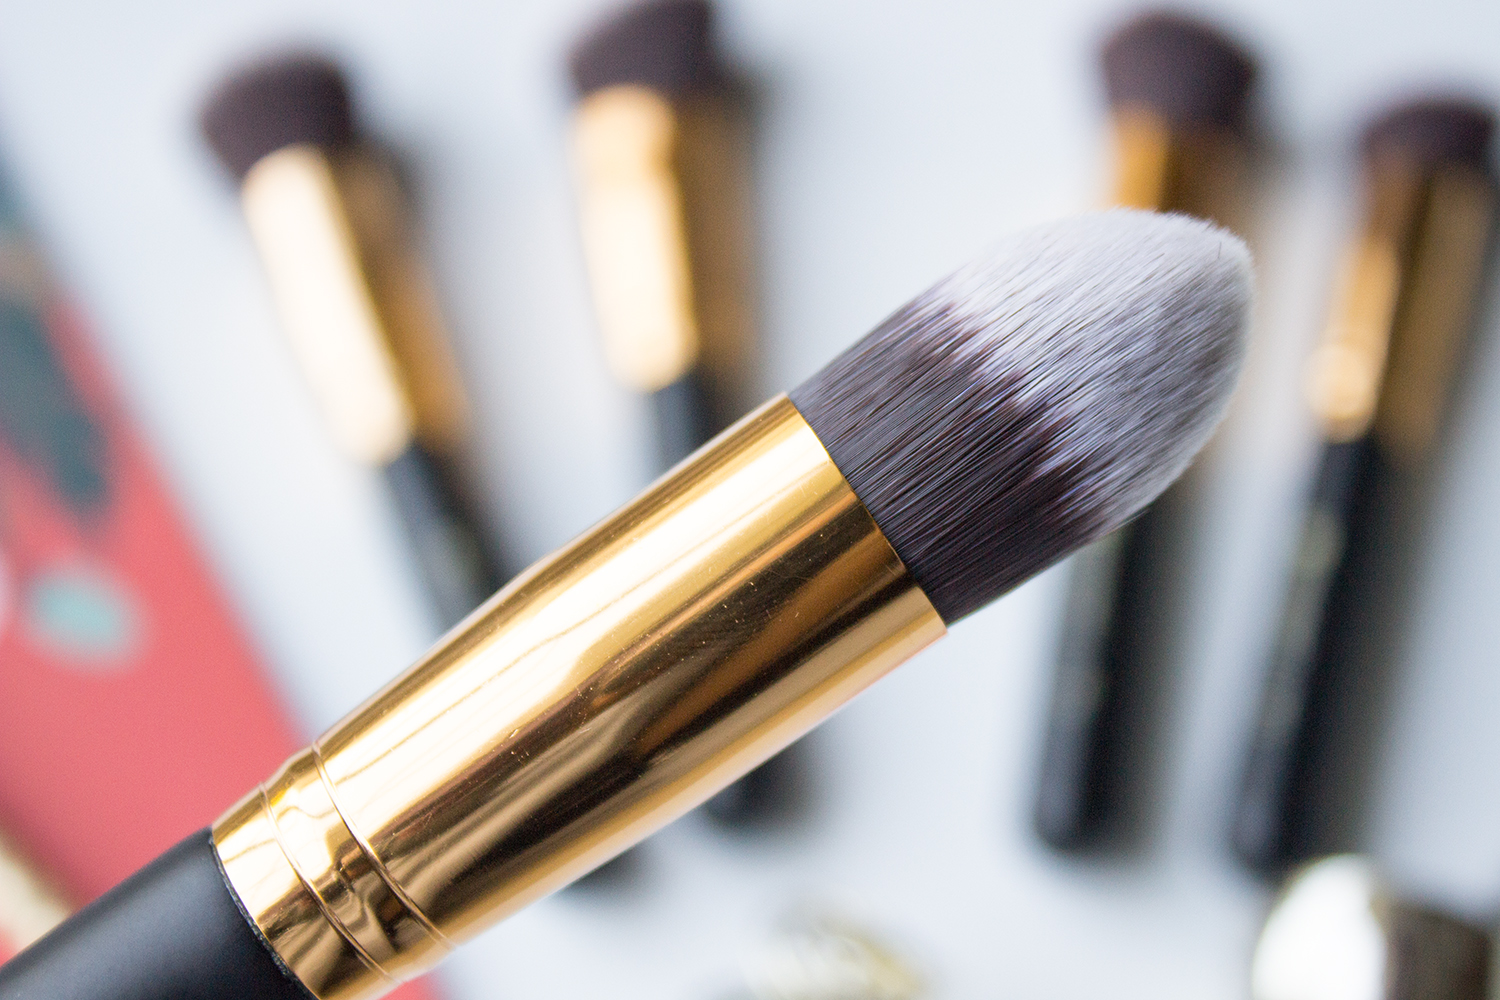 BH Cosmetics Sculpt & Blend Tapered Contouring Face Brush